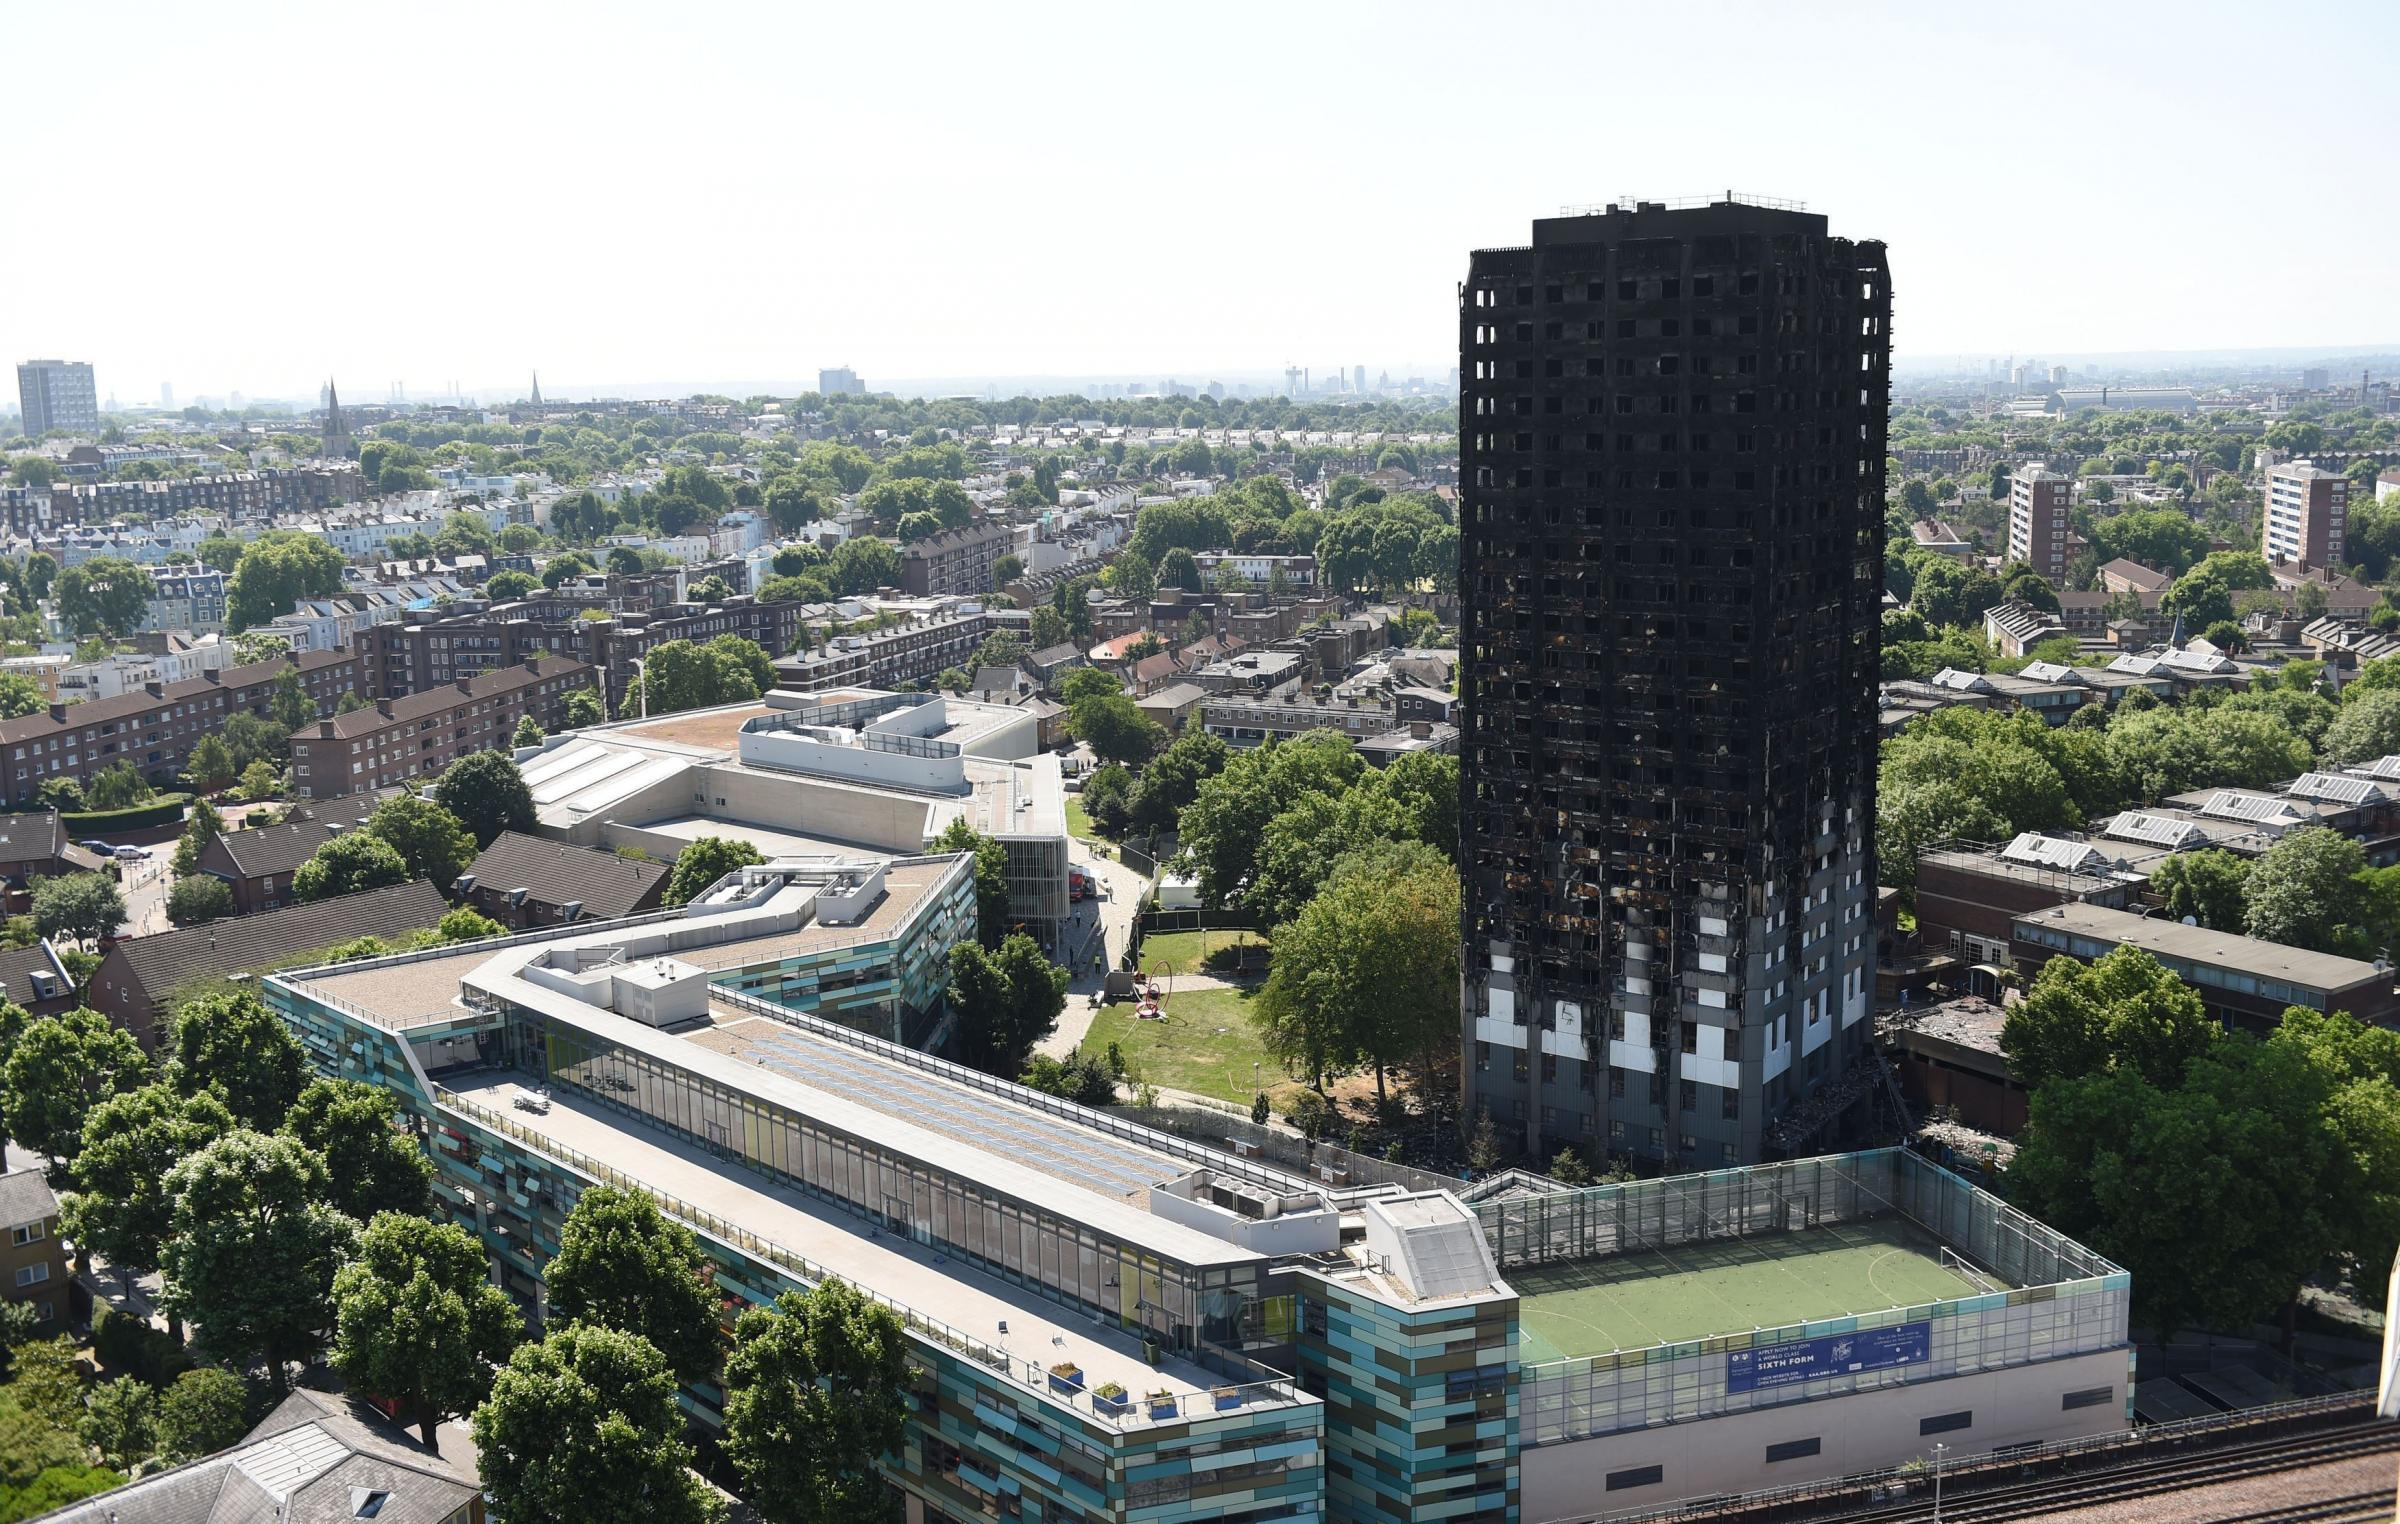 Grenfell Tower after the fire.